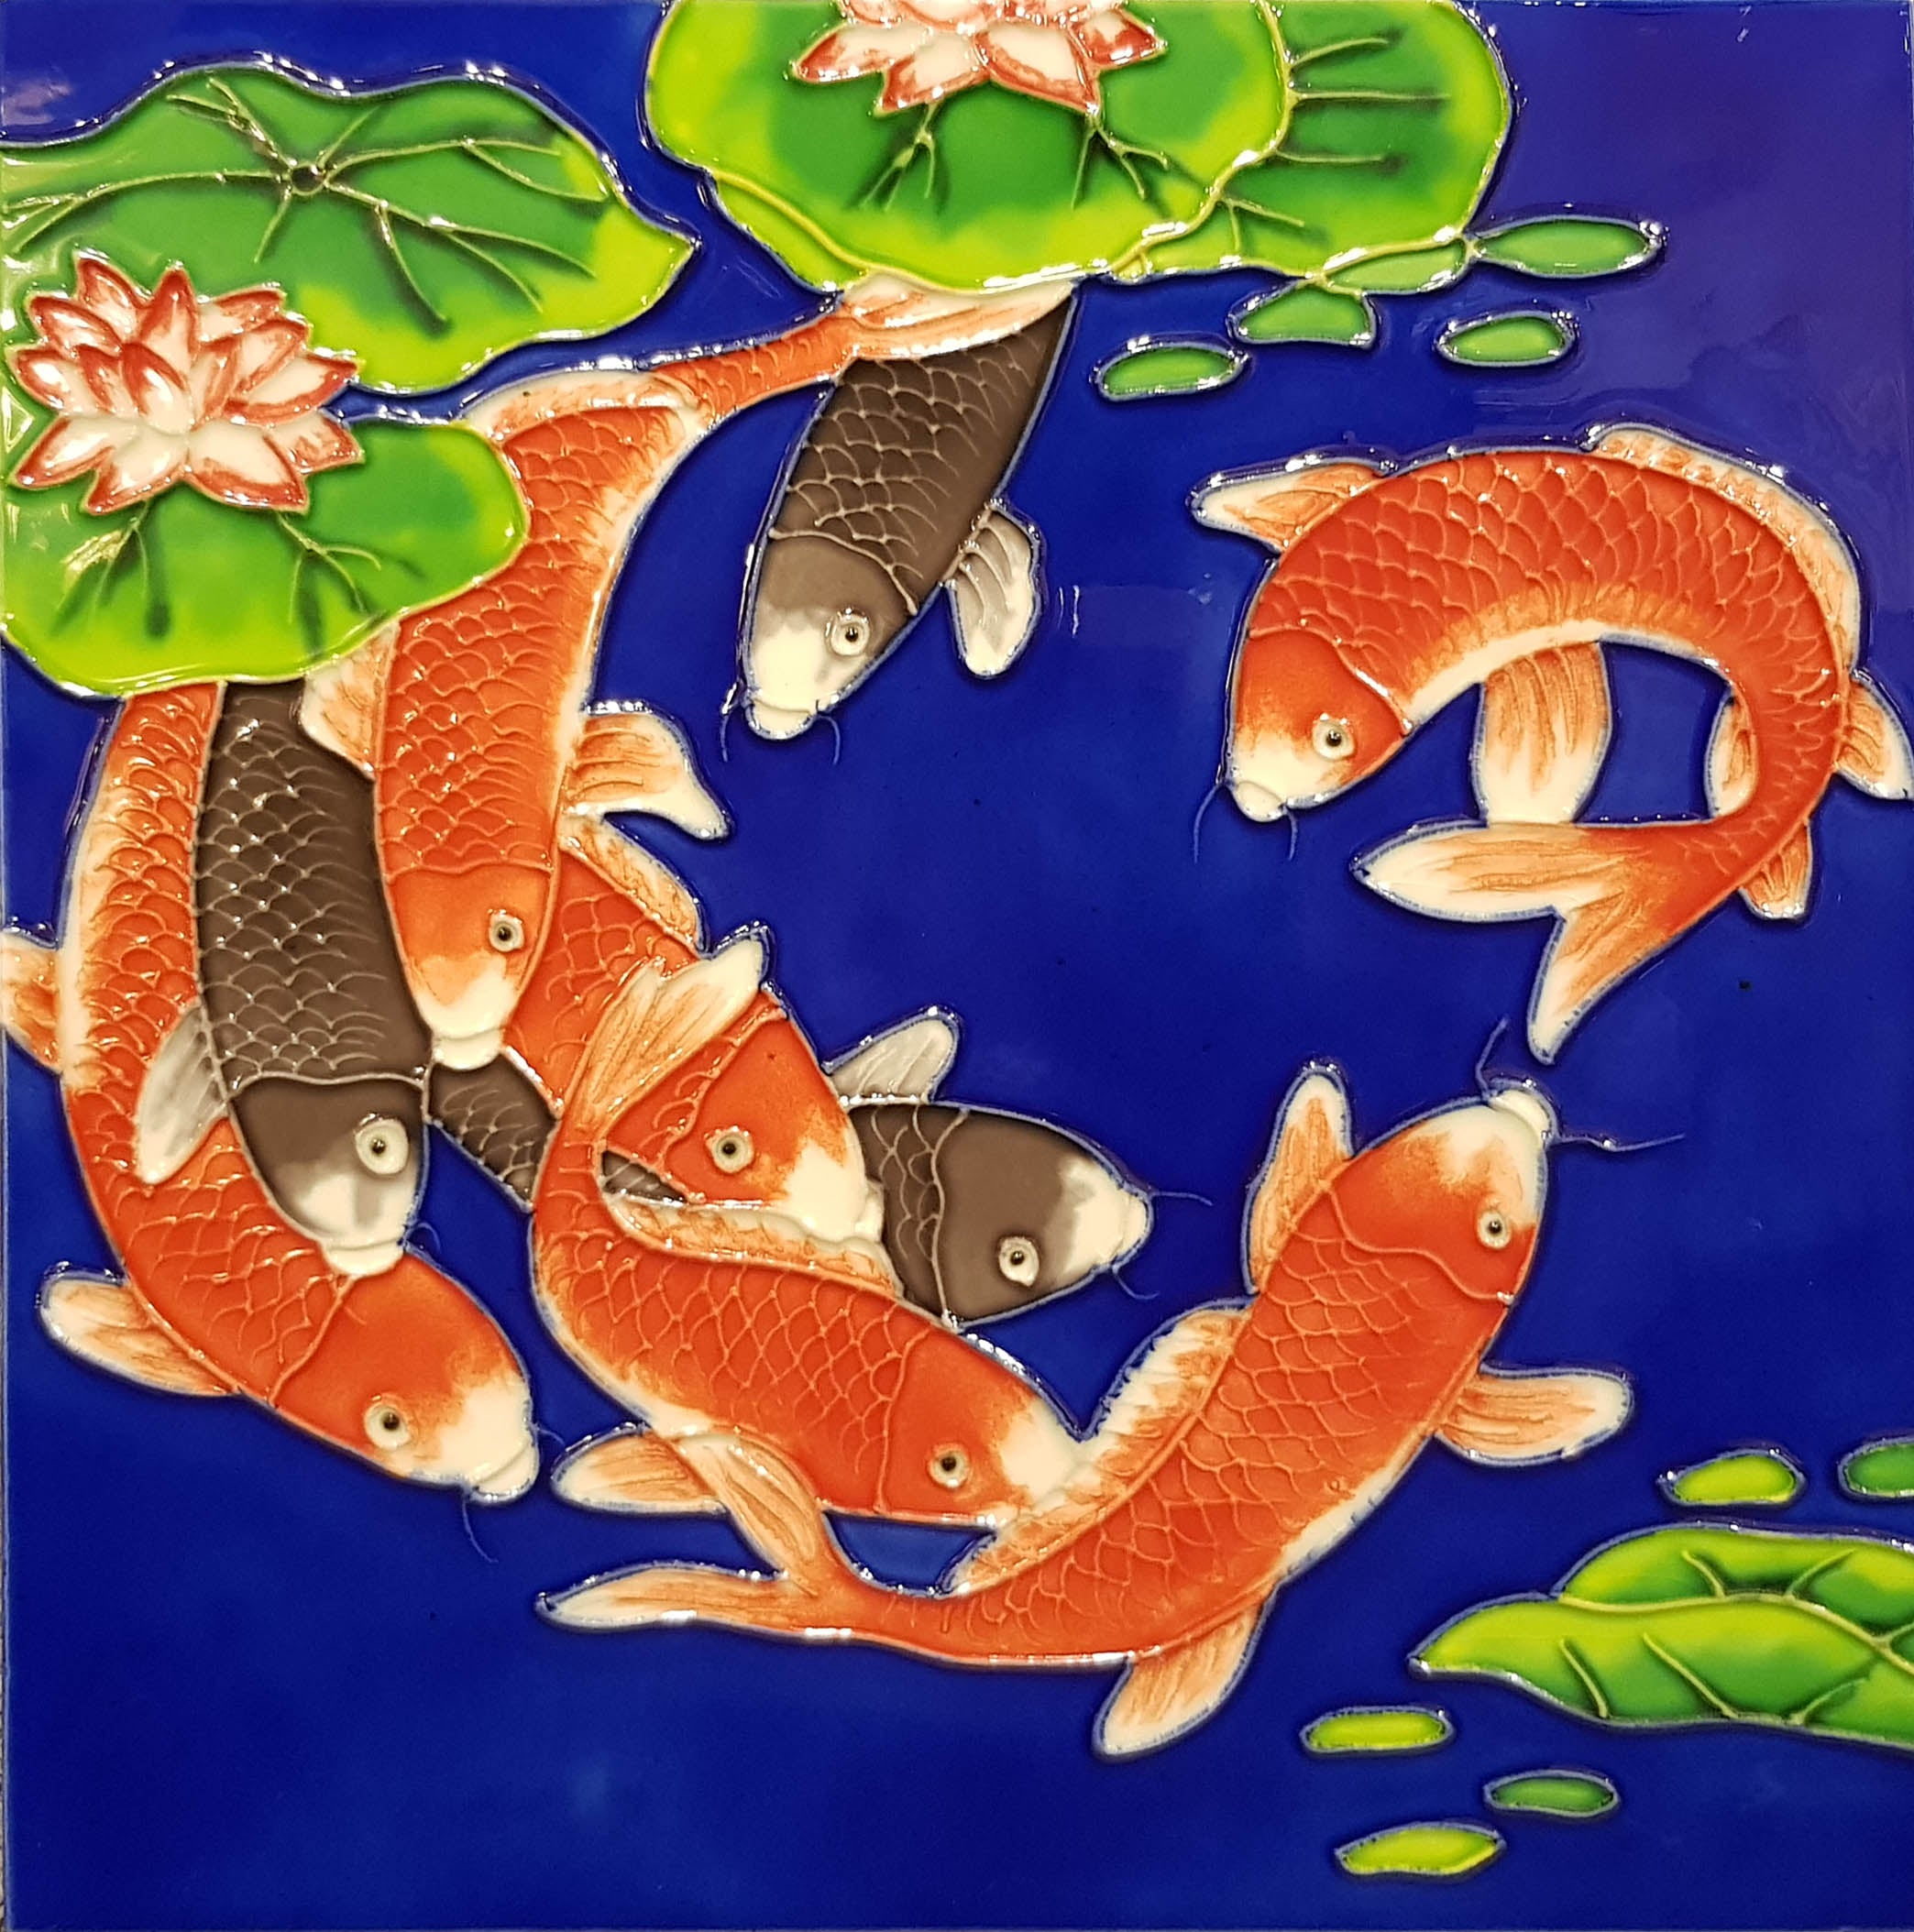 3819 Koi with Blue Background 30cm x 30cm Ceramic Tile